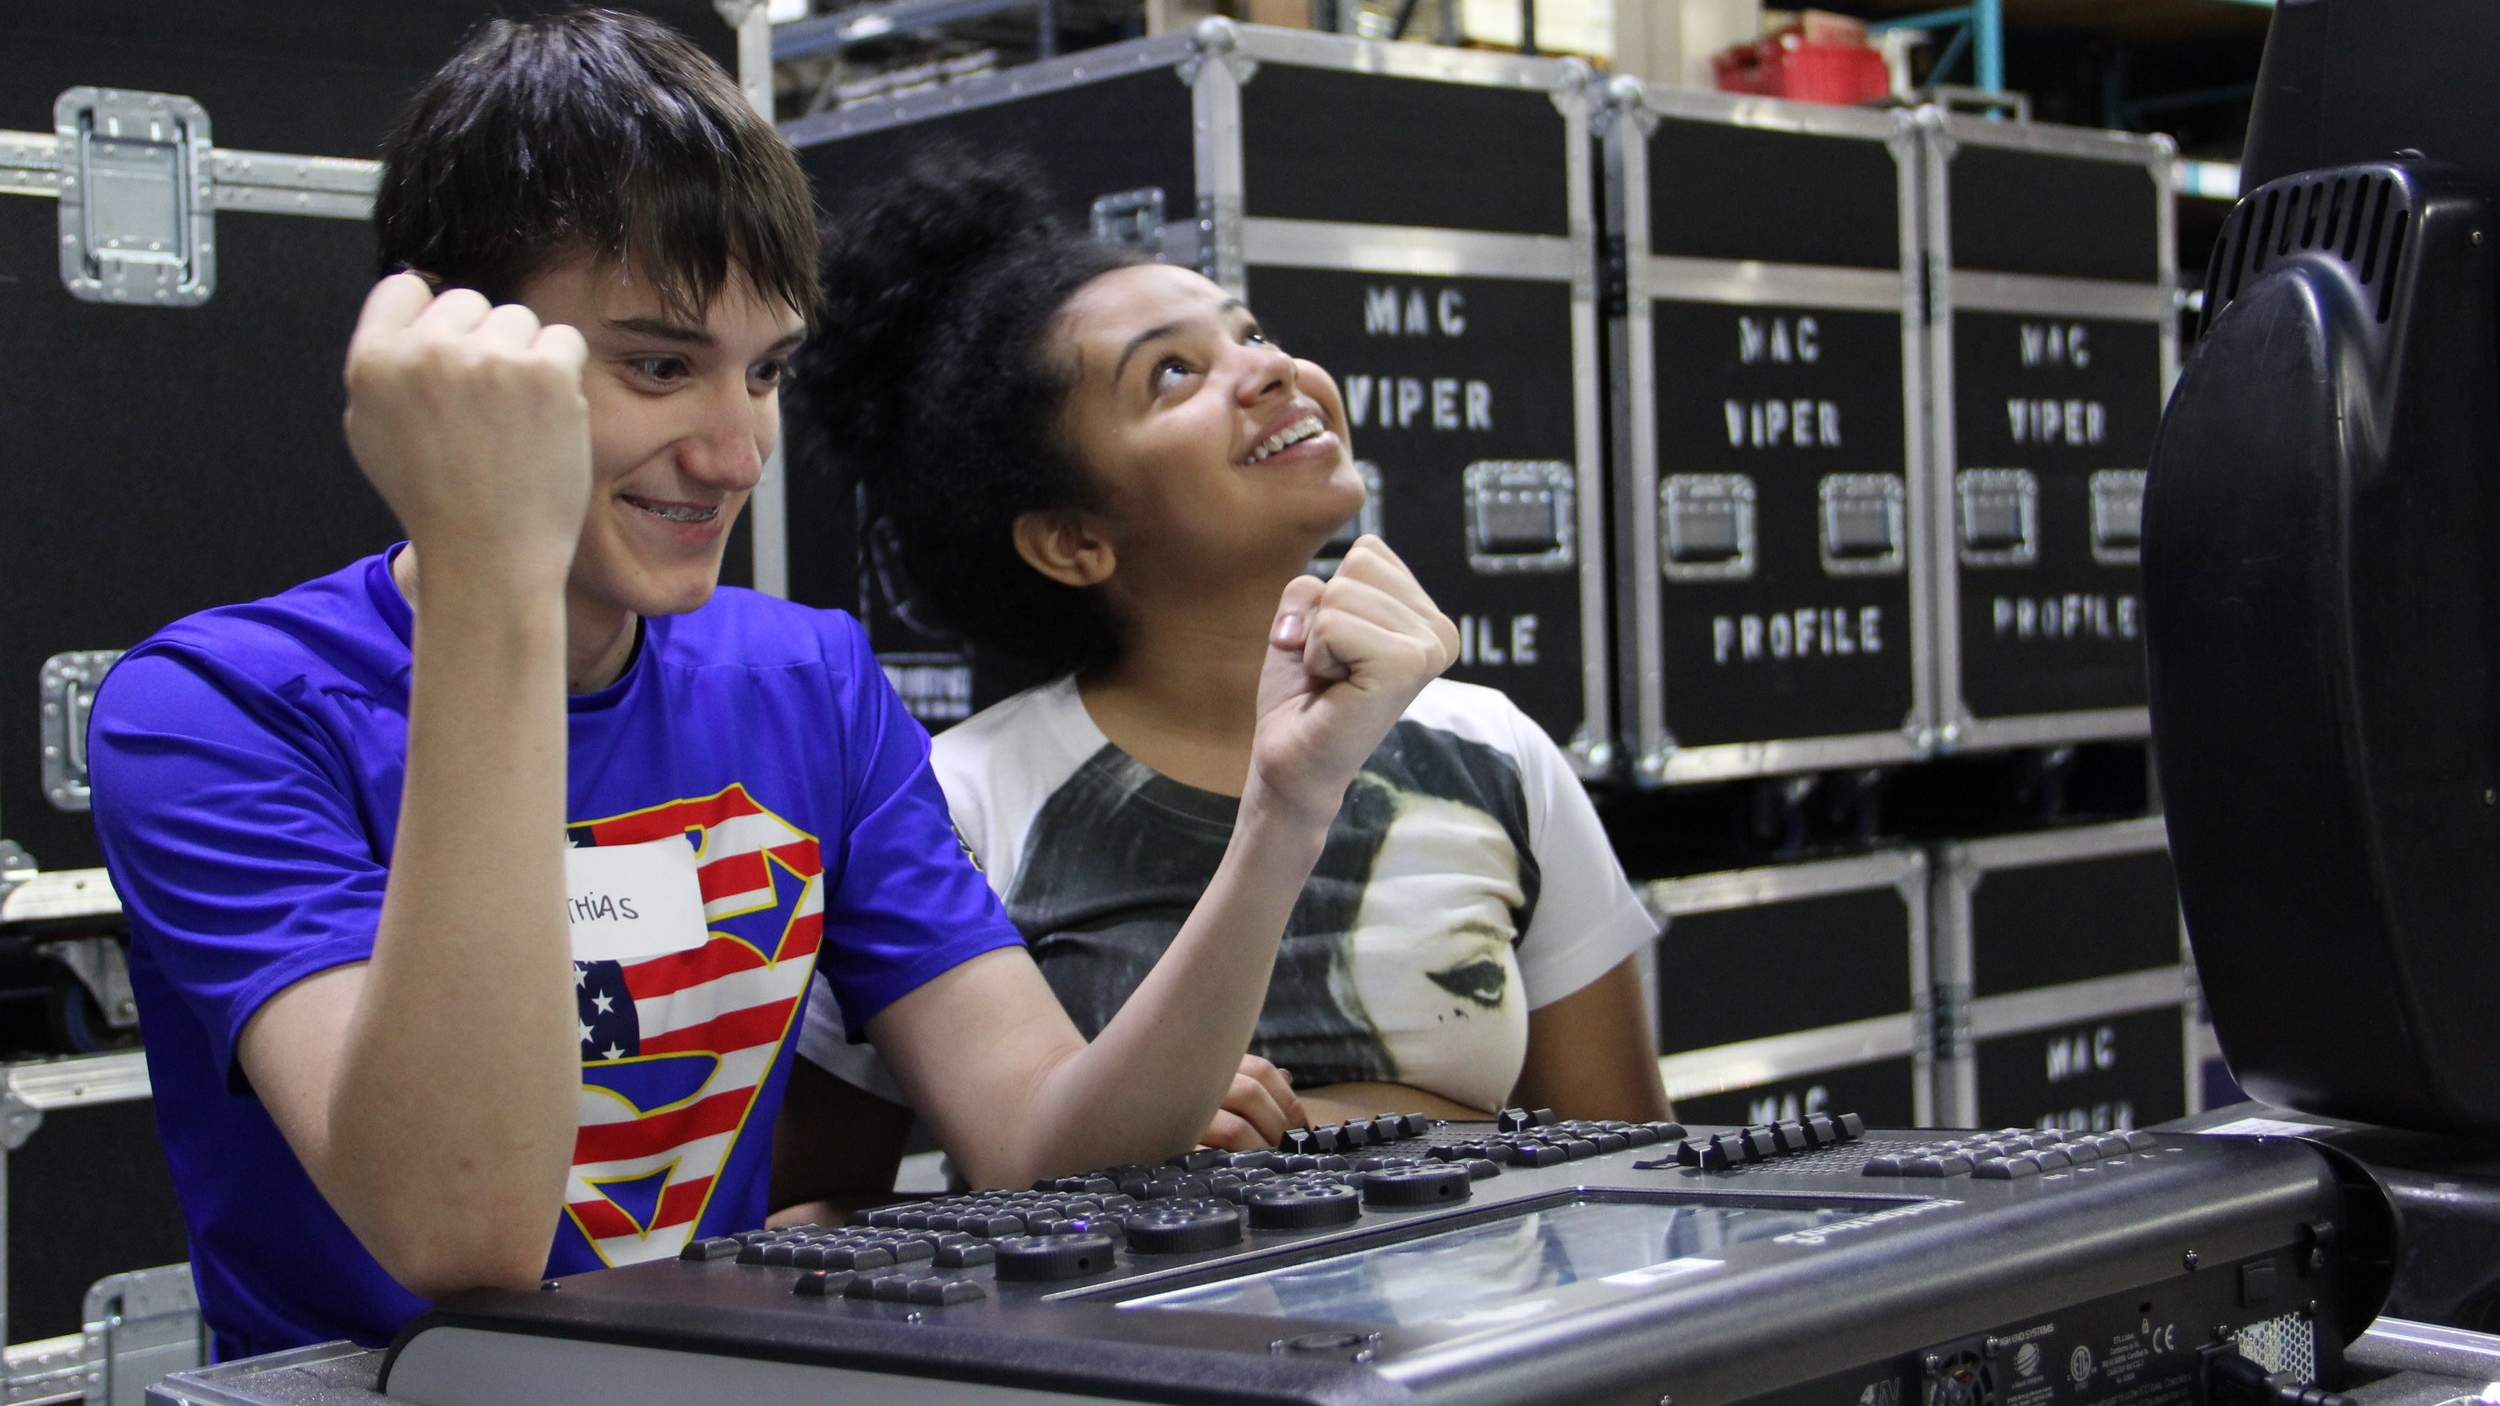 When you welcome young people into your work site, you also benefit from their energy, curiosity, and excitement.We constantly hear from partners: